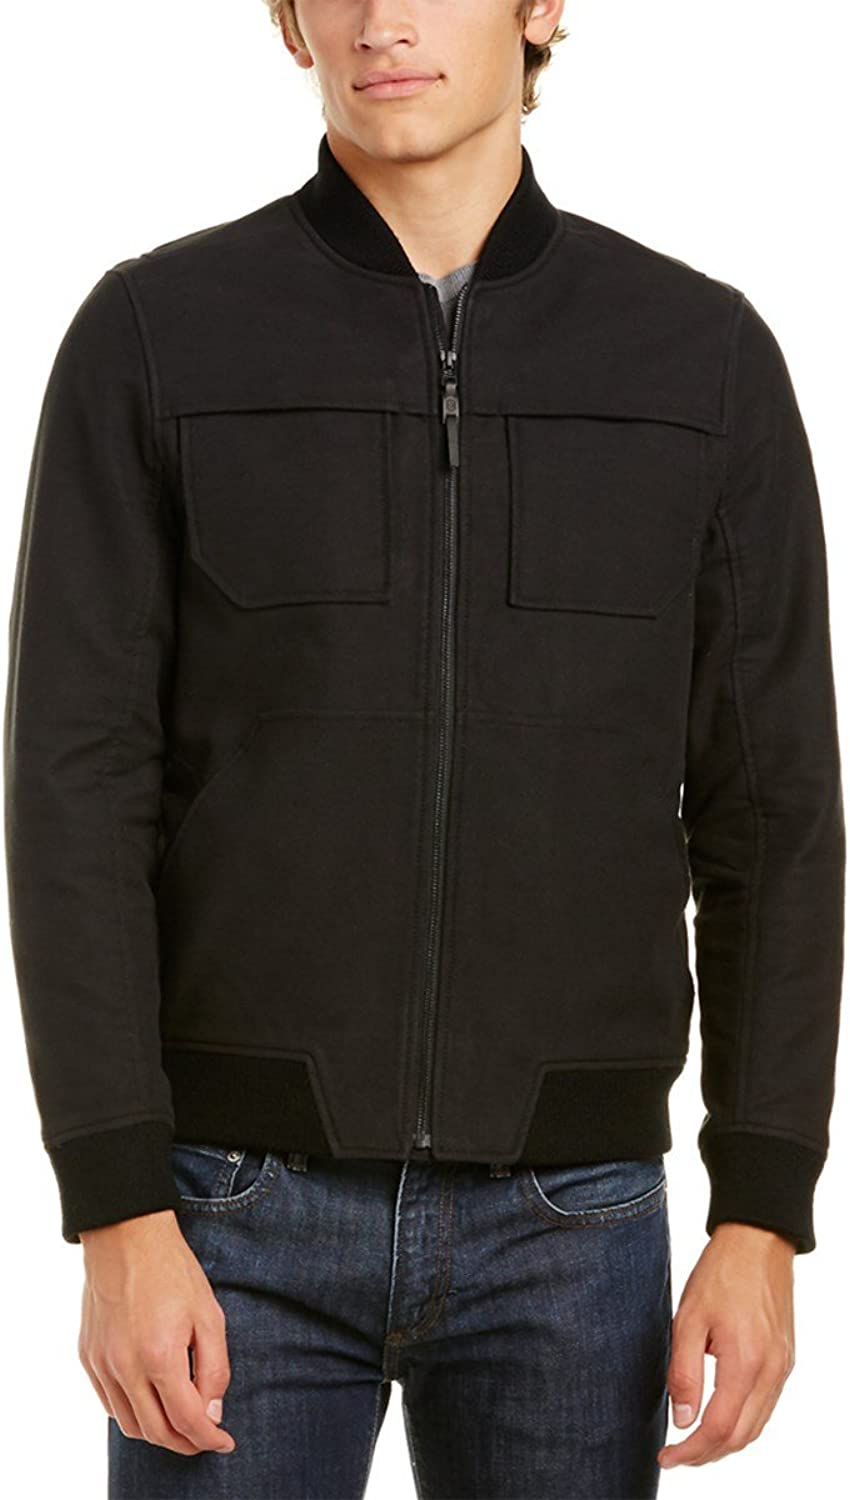 Victorinox Swiss Army Elevation Thermore Ecodown Bomber Jacket (XSmall, Black)